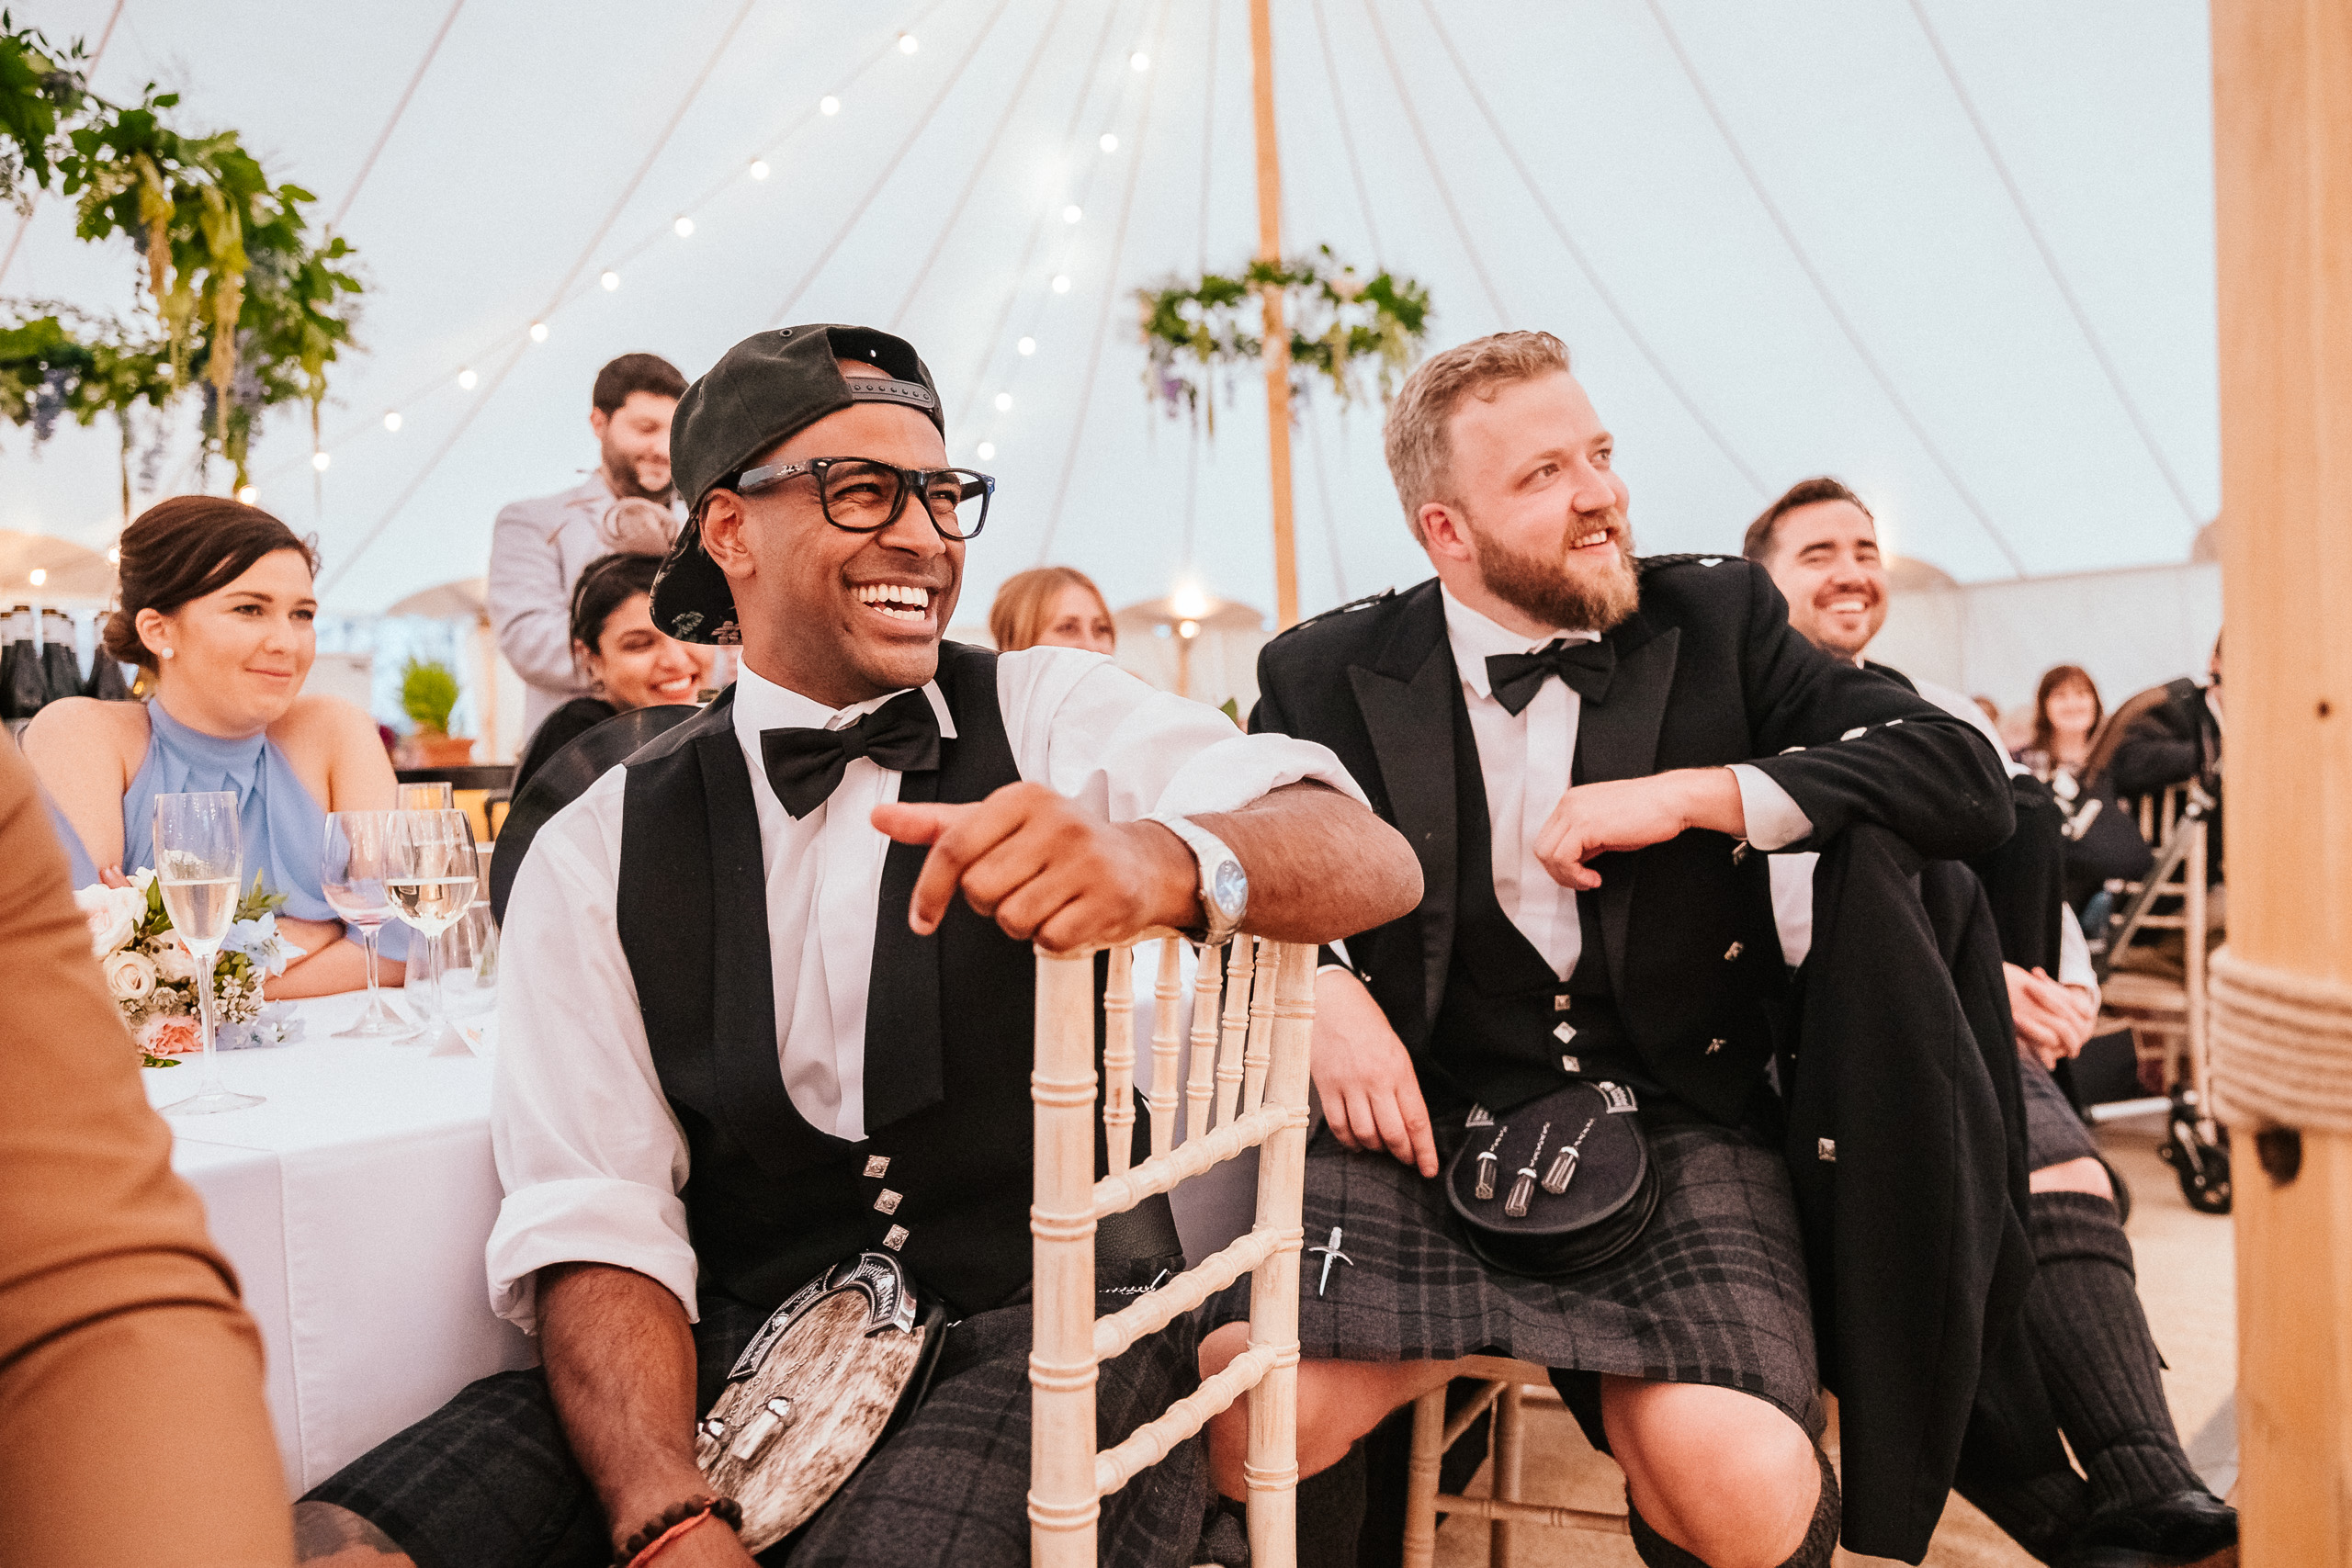 PapaKåta couple April & Martin's Sperry wedding at Arniston House, Scotland captured by Laurence Howe Photography- Groomsmen styling